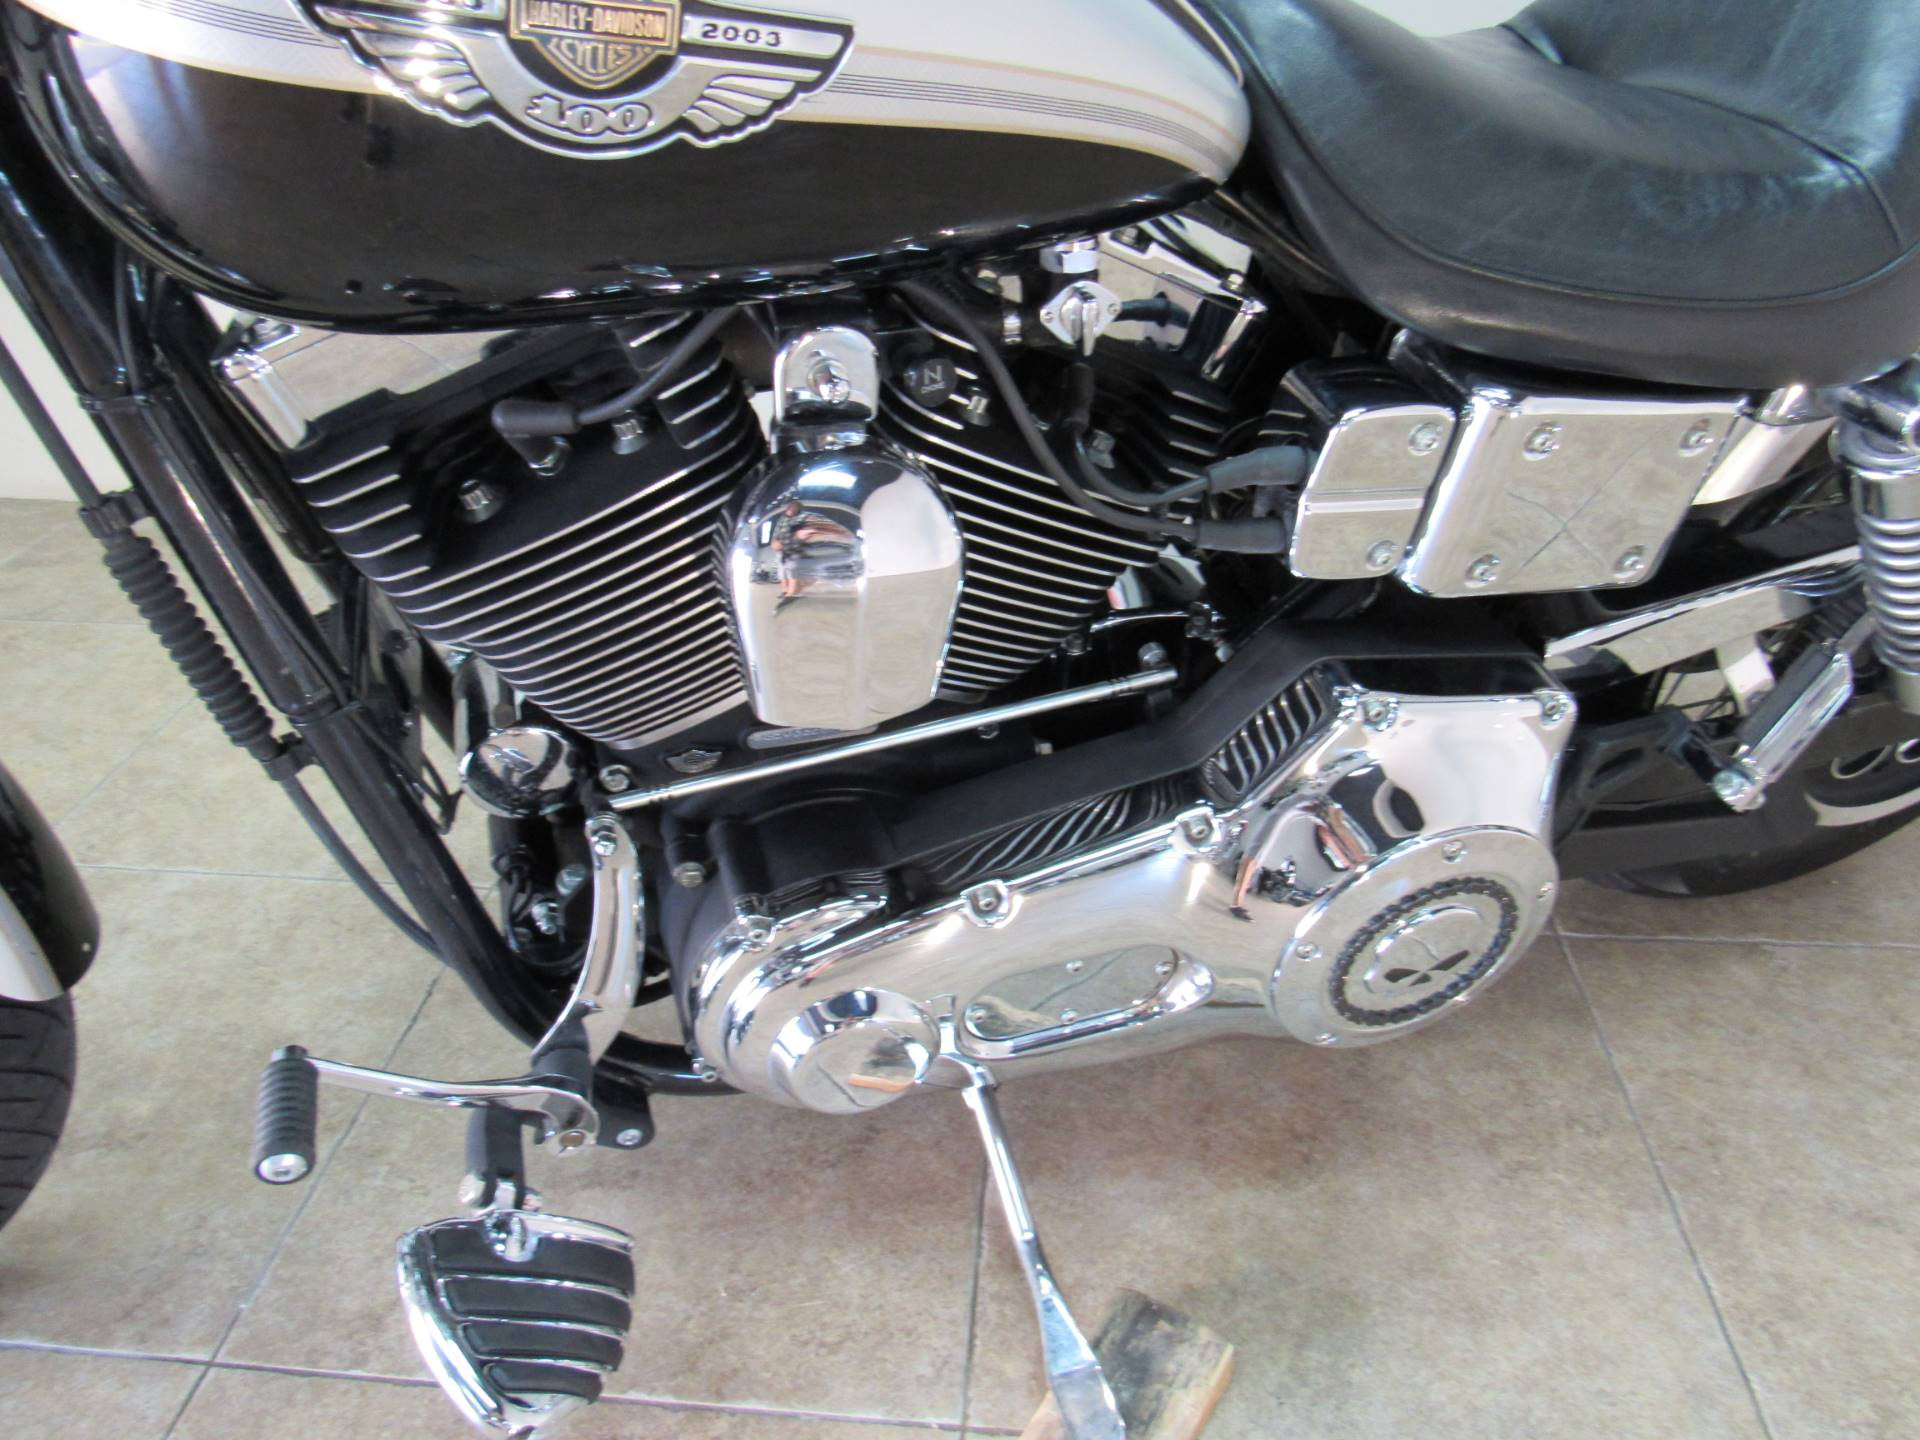 2003 Harley-Davidson FXDWG Dyna Wide Glide® in Temecula, California - Photo 20